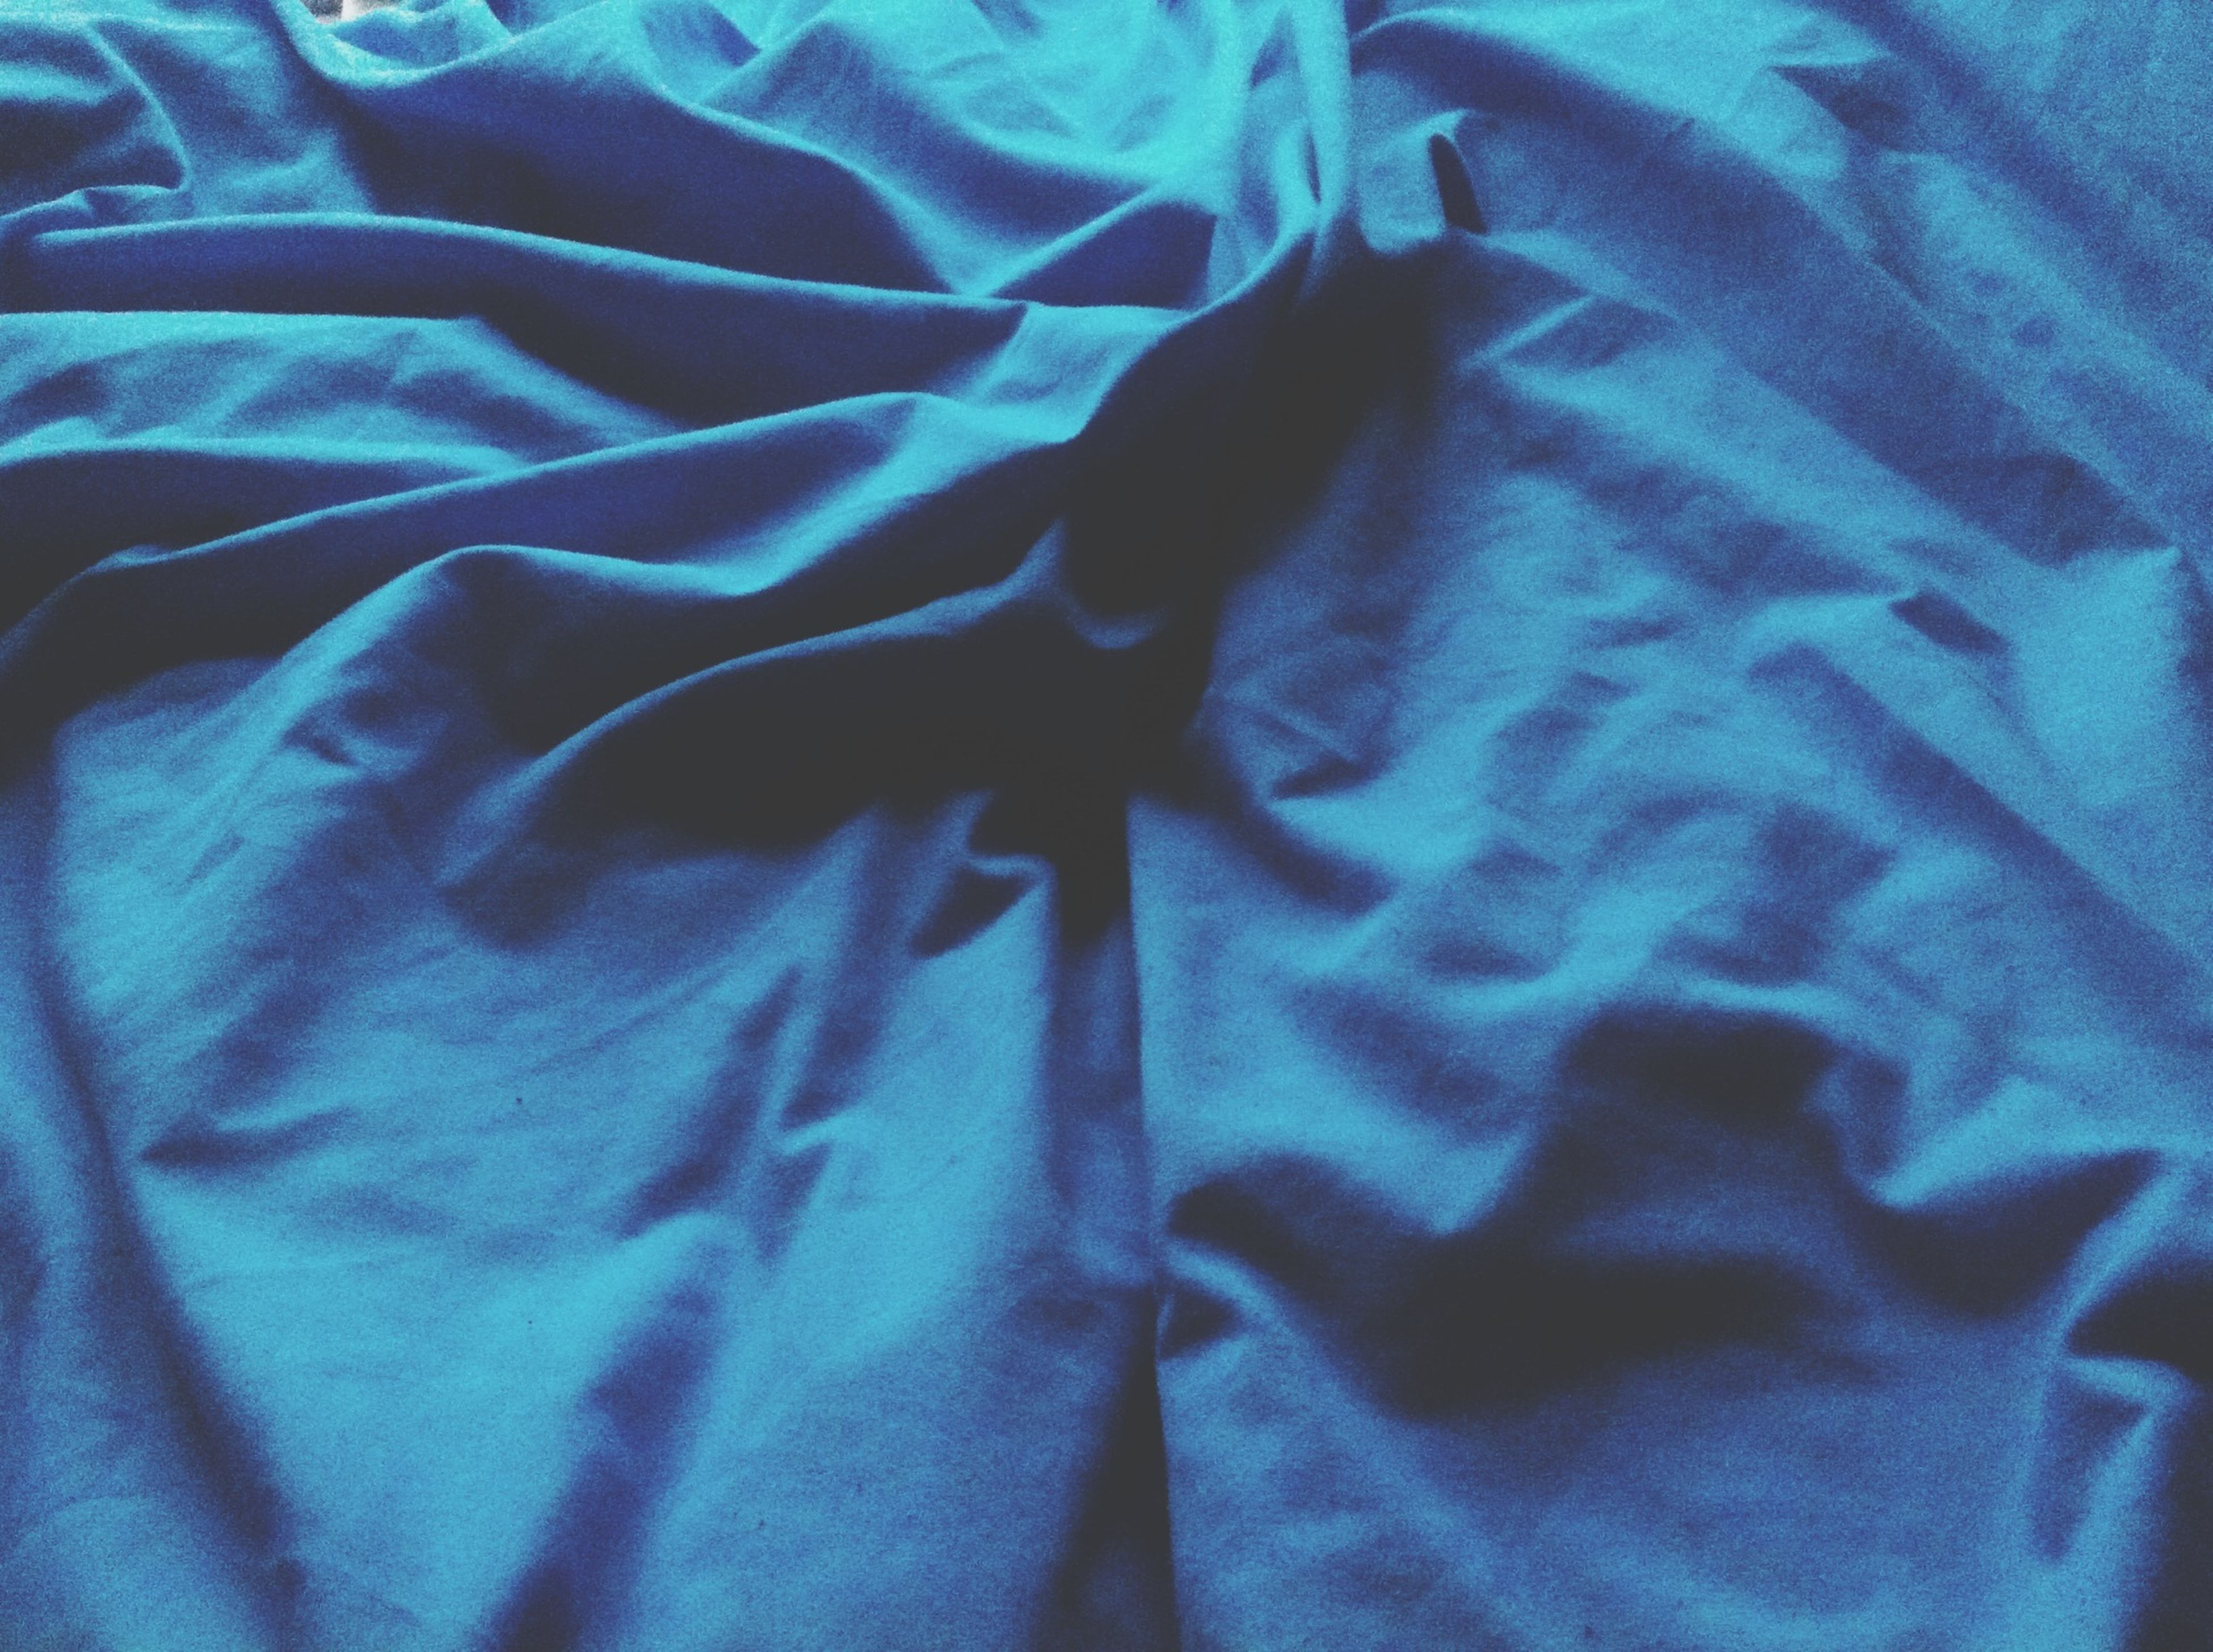 indoors, textile, fabric, blue, close-up, pattern, bed, one person, high angle view, full frame, design, backgrounds, auto post production filter, striped, clothing, textured, art, creativity, art and craft